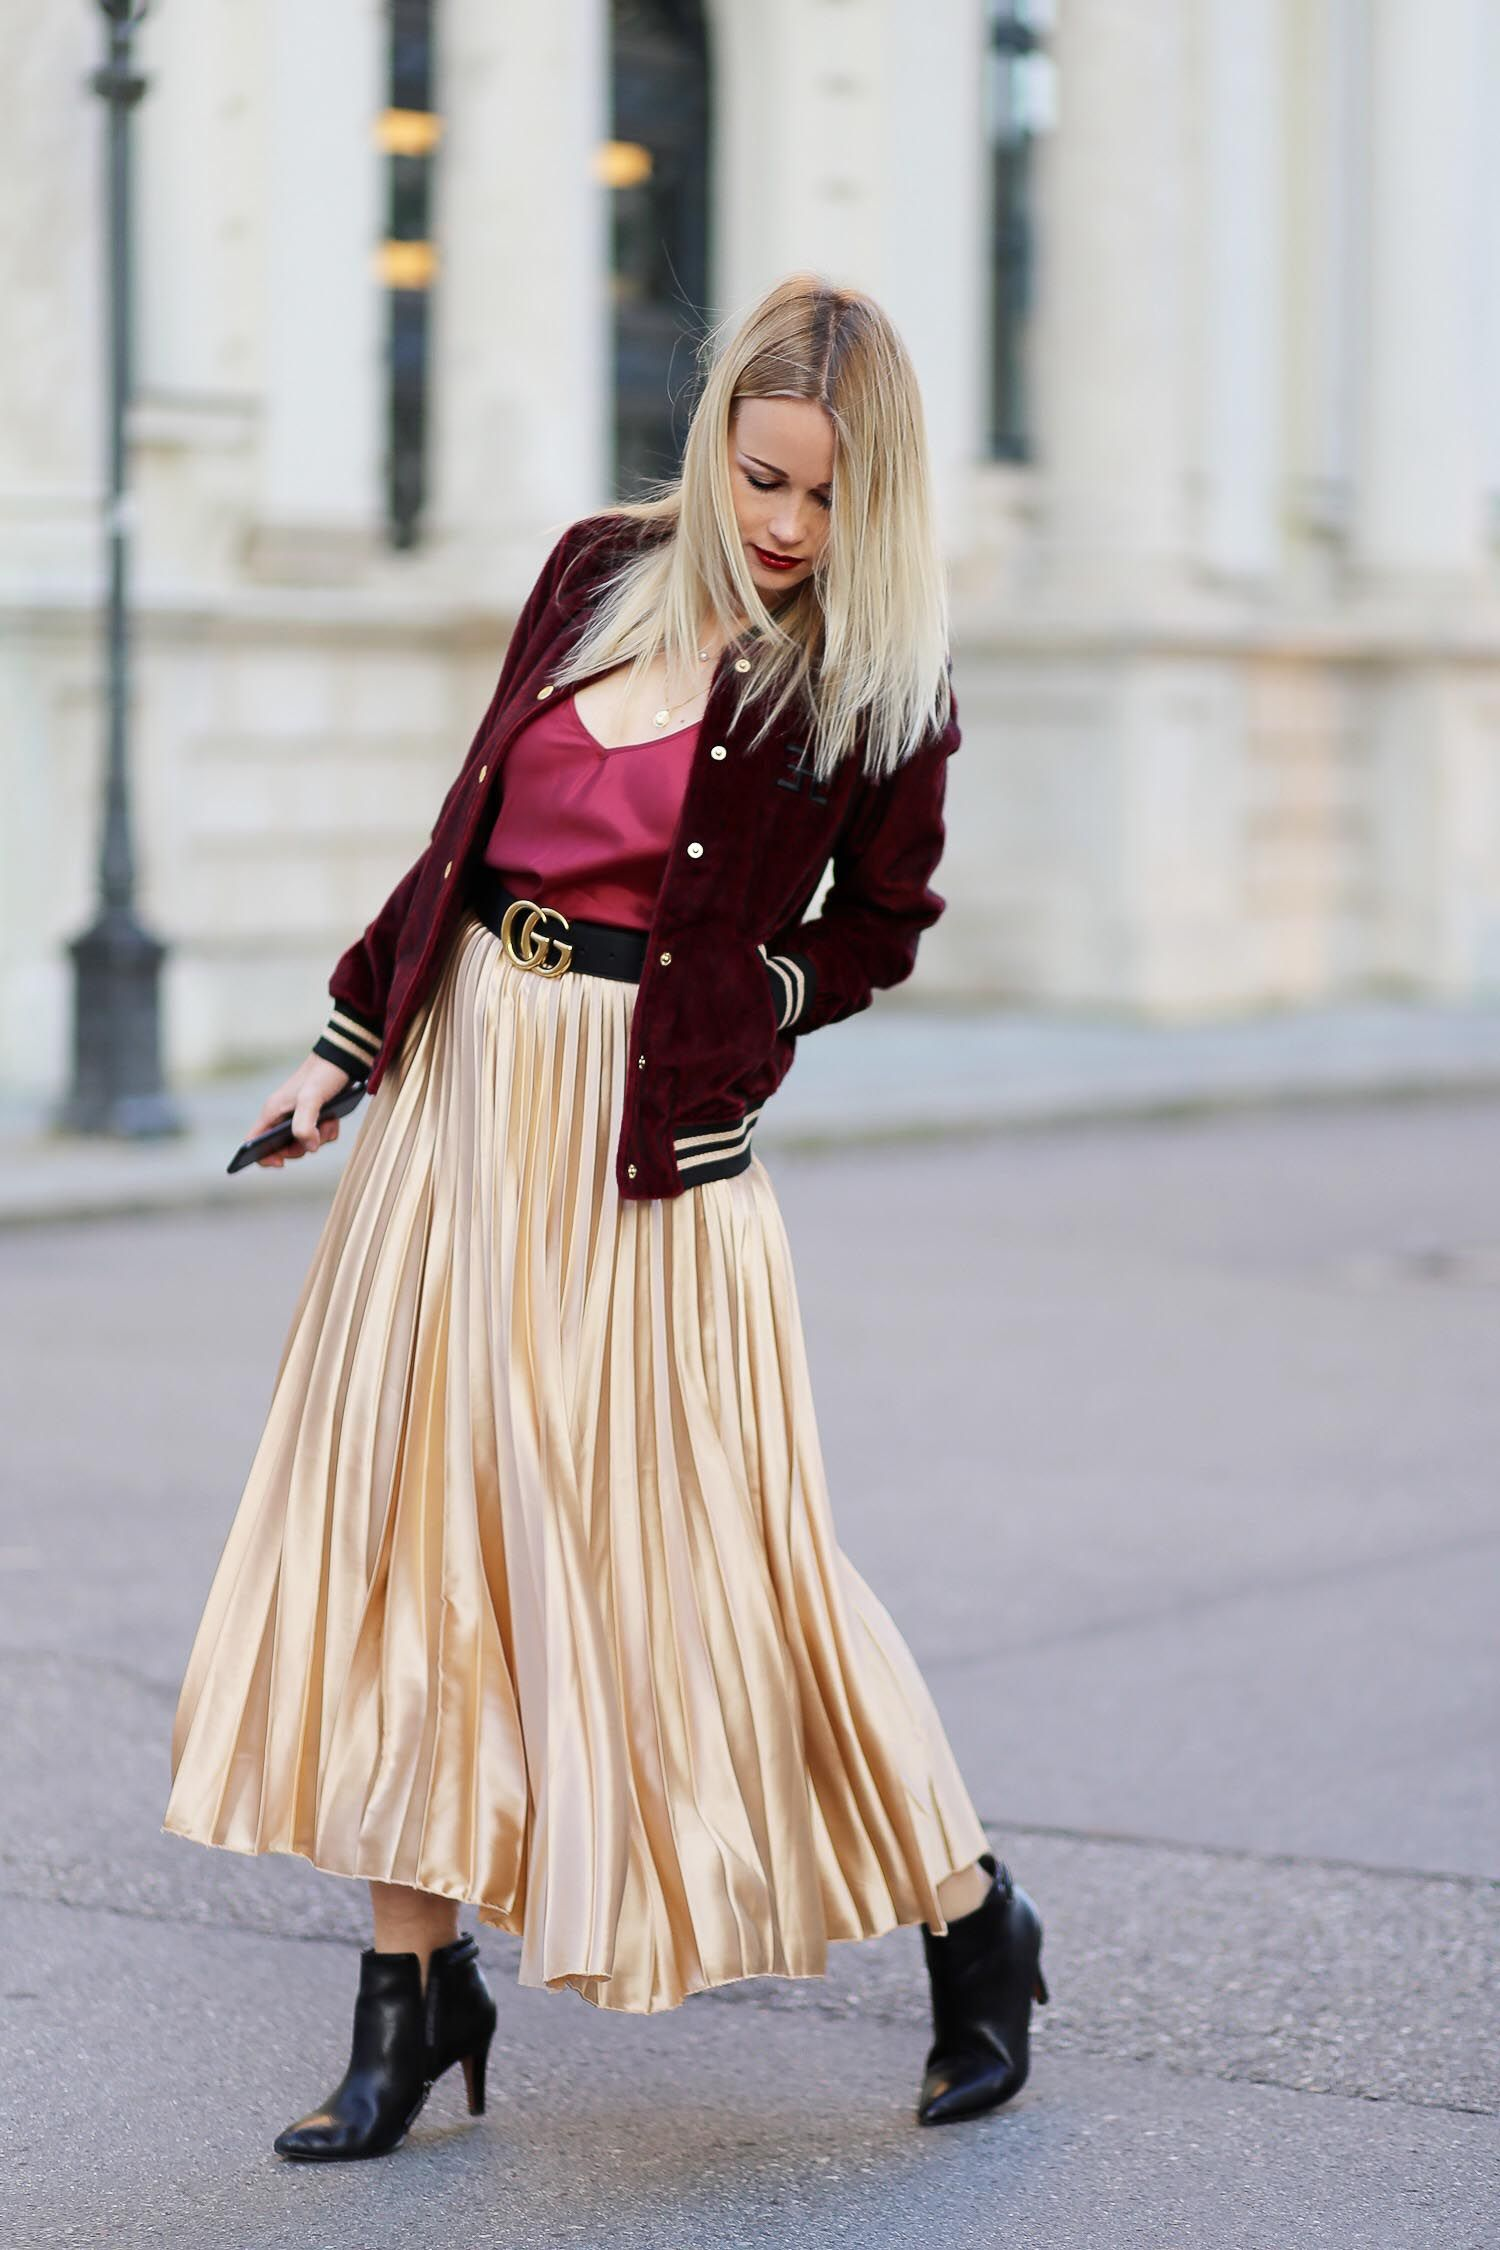 66d3b898567c Stylingliebe-fashionblog-muenchen-styleblog-munich-blogger-germany-fashionblogger-blogger-germany-lifestyleblog-modeblog-germanblogger-plisseerock-and-  ...